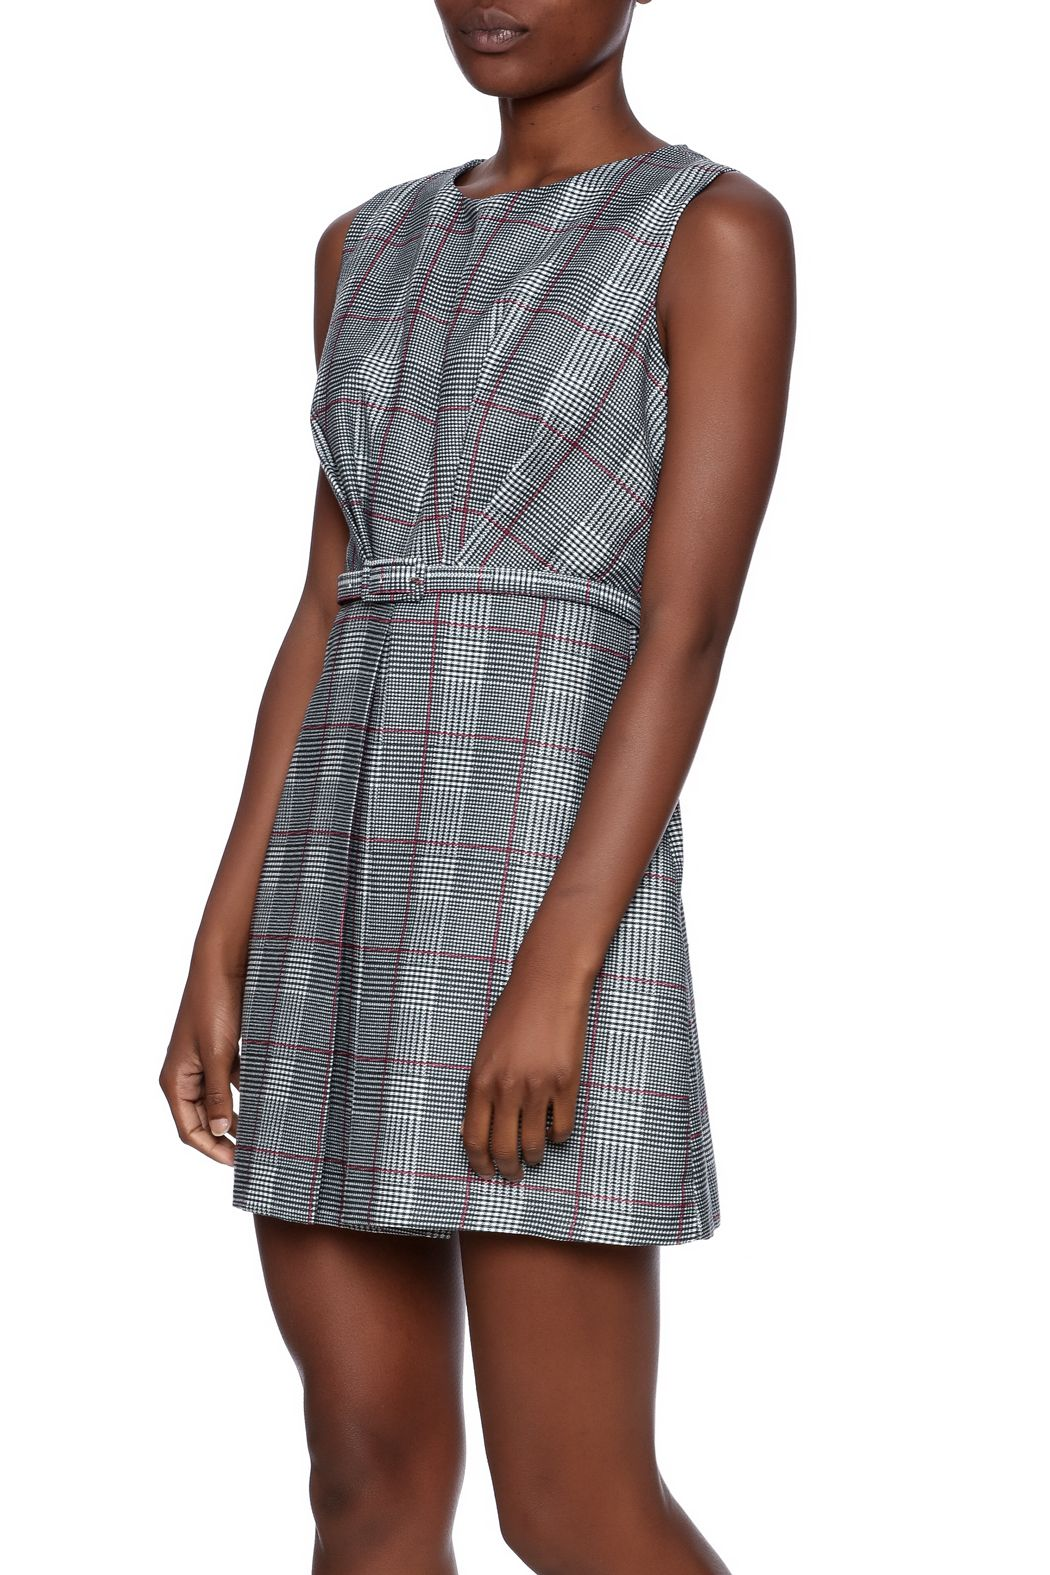 Plaid printed fit an flare dress withpleating, back zipper closure and adjustable waist belt.    One size fits sizes xsmall through small.   Perfectly Pleated Dress by Pinkyotto. Clothing - Dresses - Work Clothing - Dresses - Printed Nolita, Manhattan, New York City Boston, Massachusetts